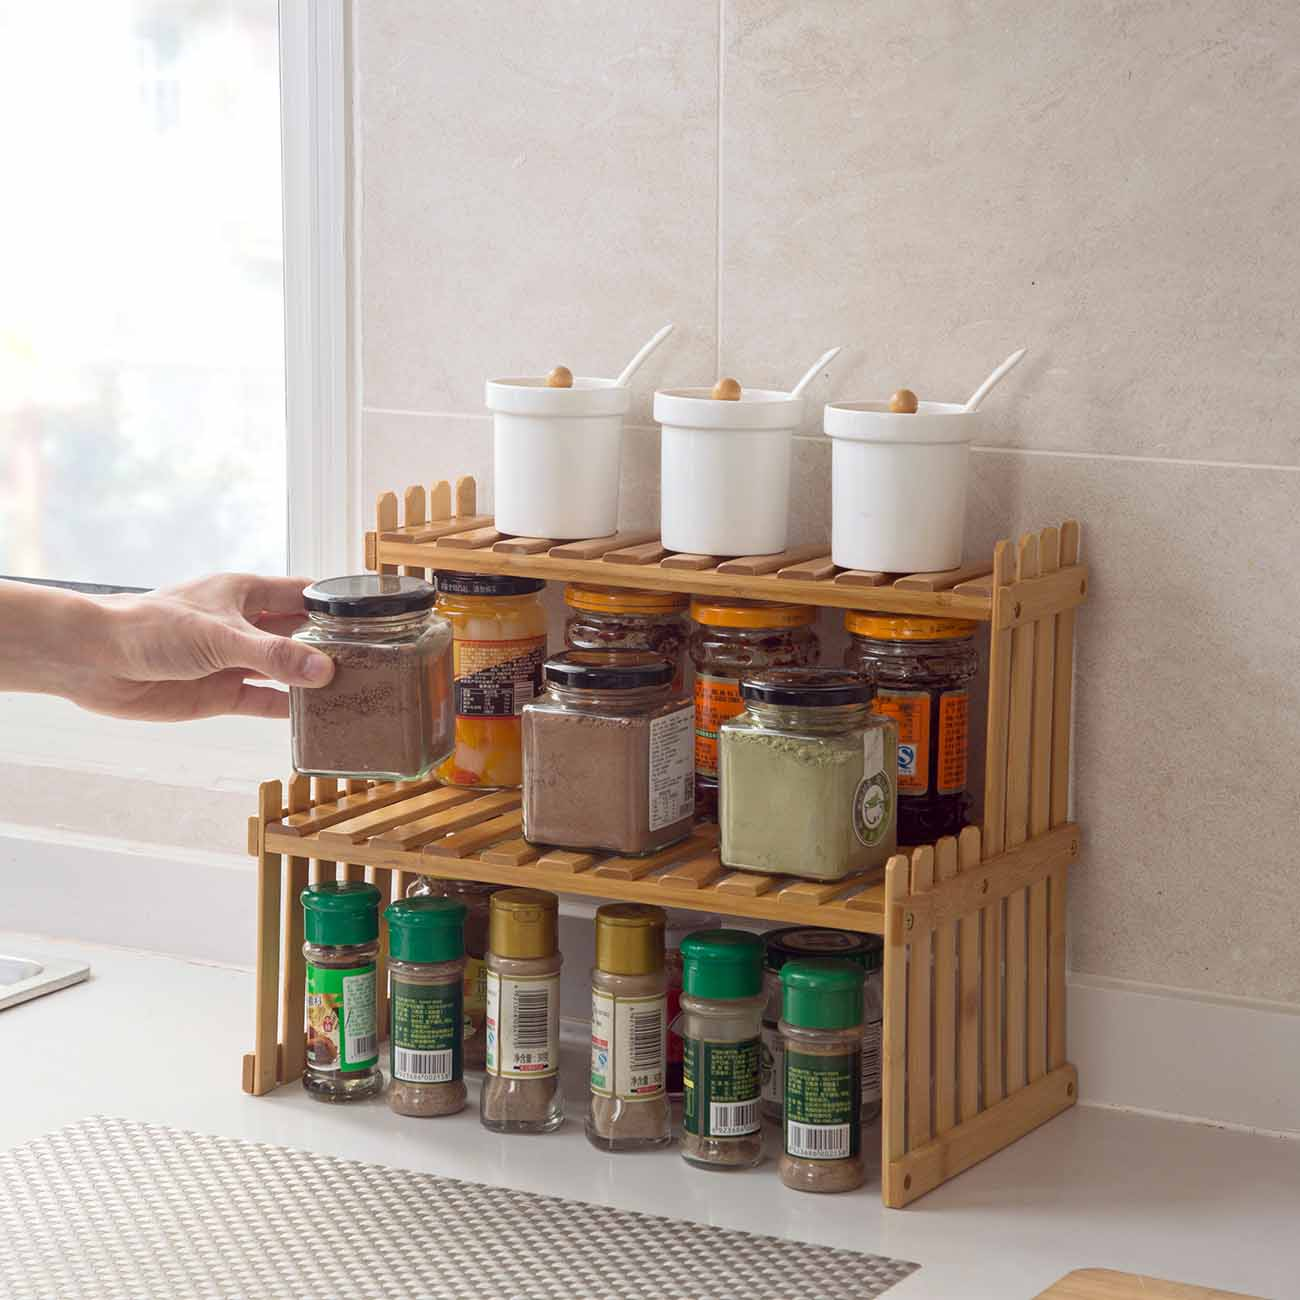 Kitchen-2-Layers-Bamboo-Storage-Rack.jpg